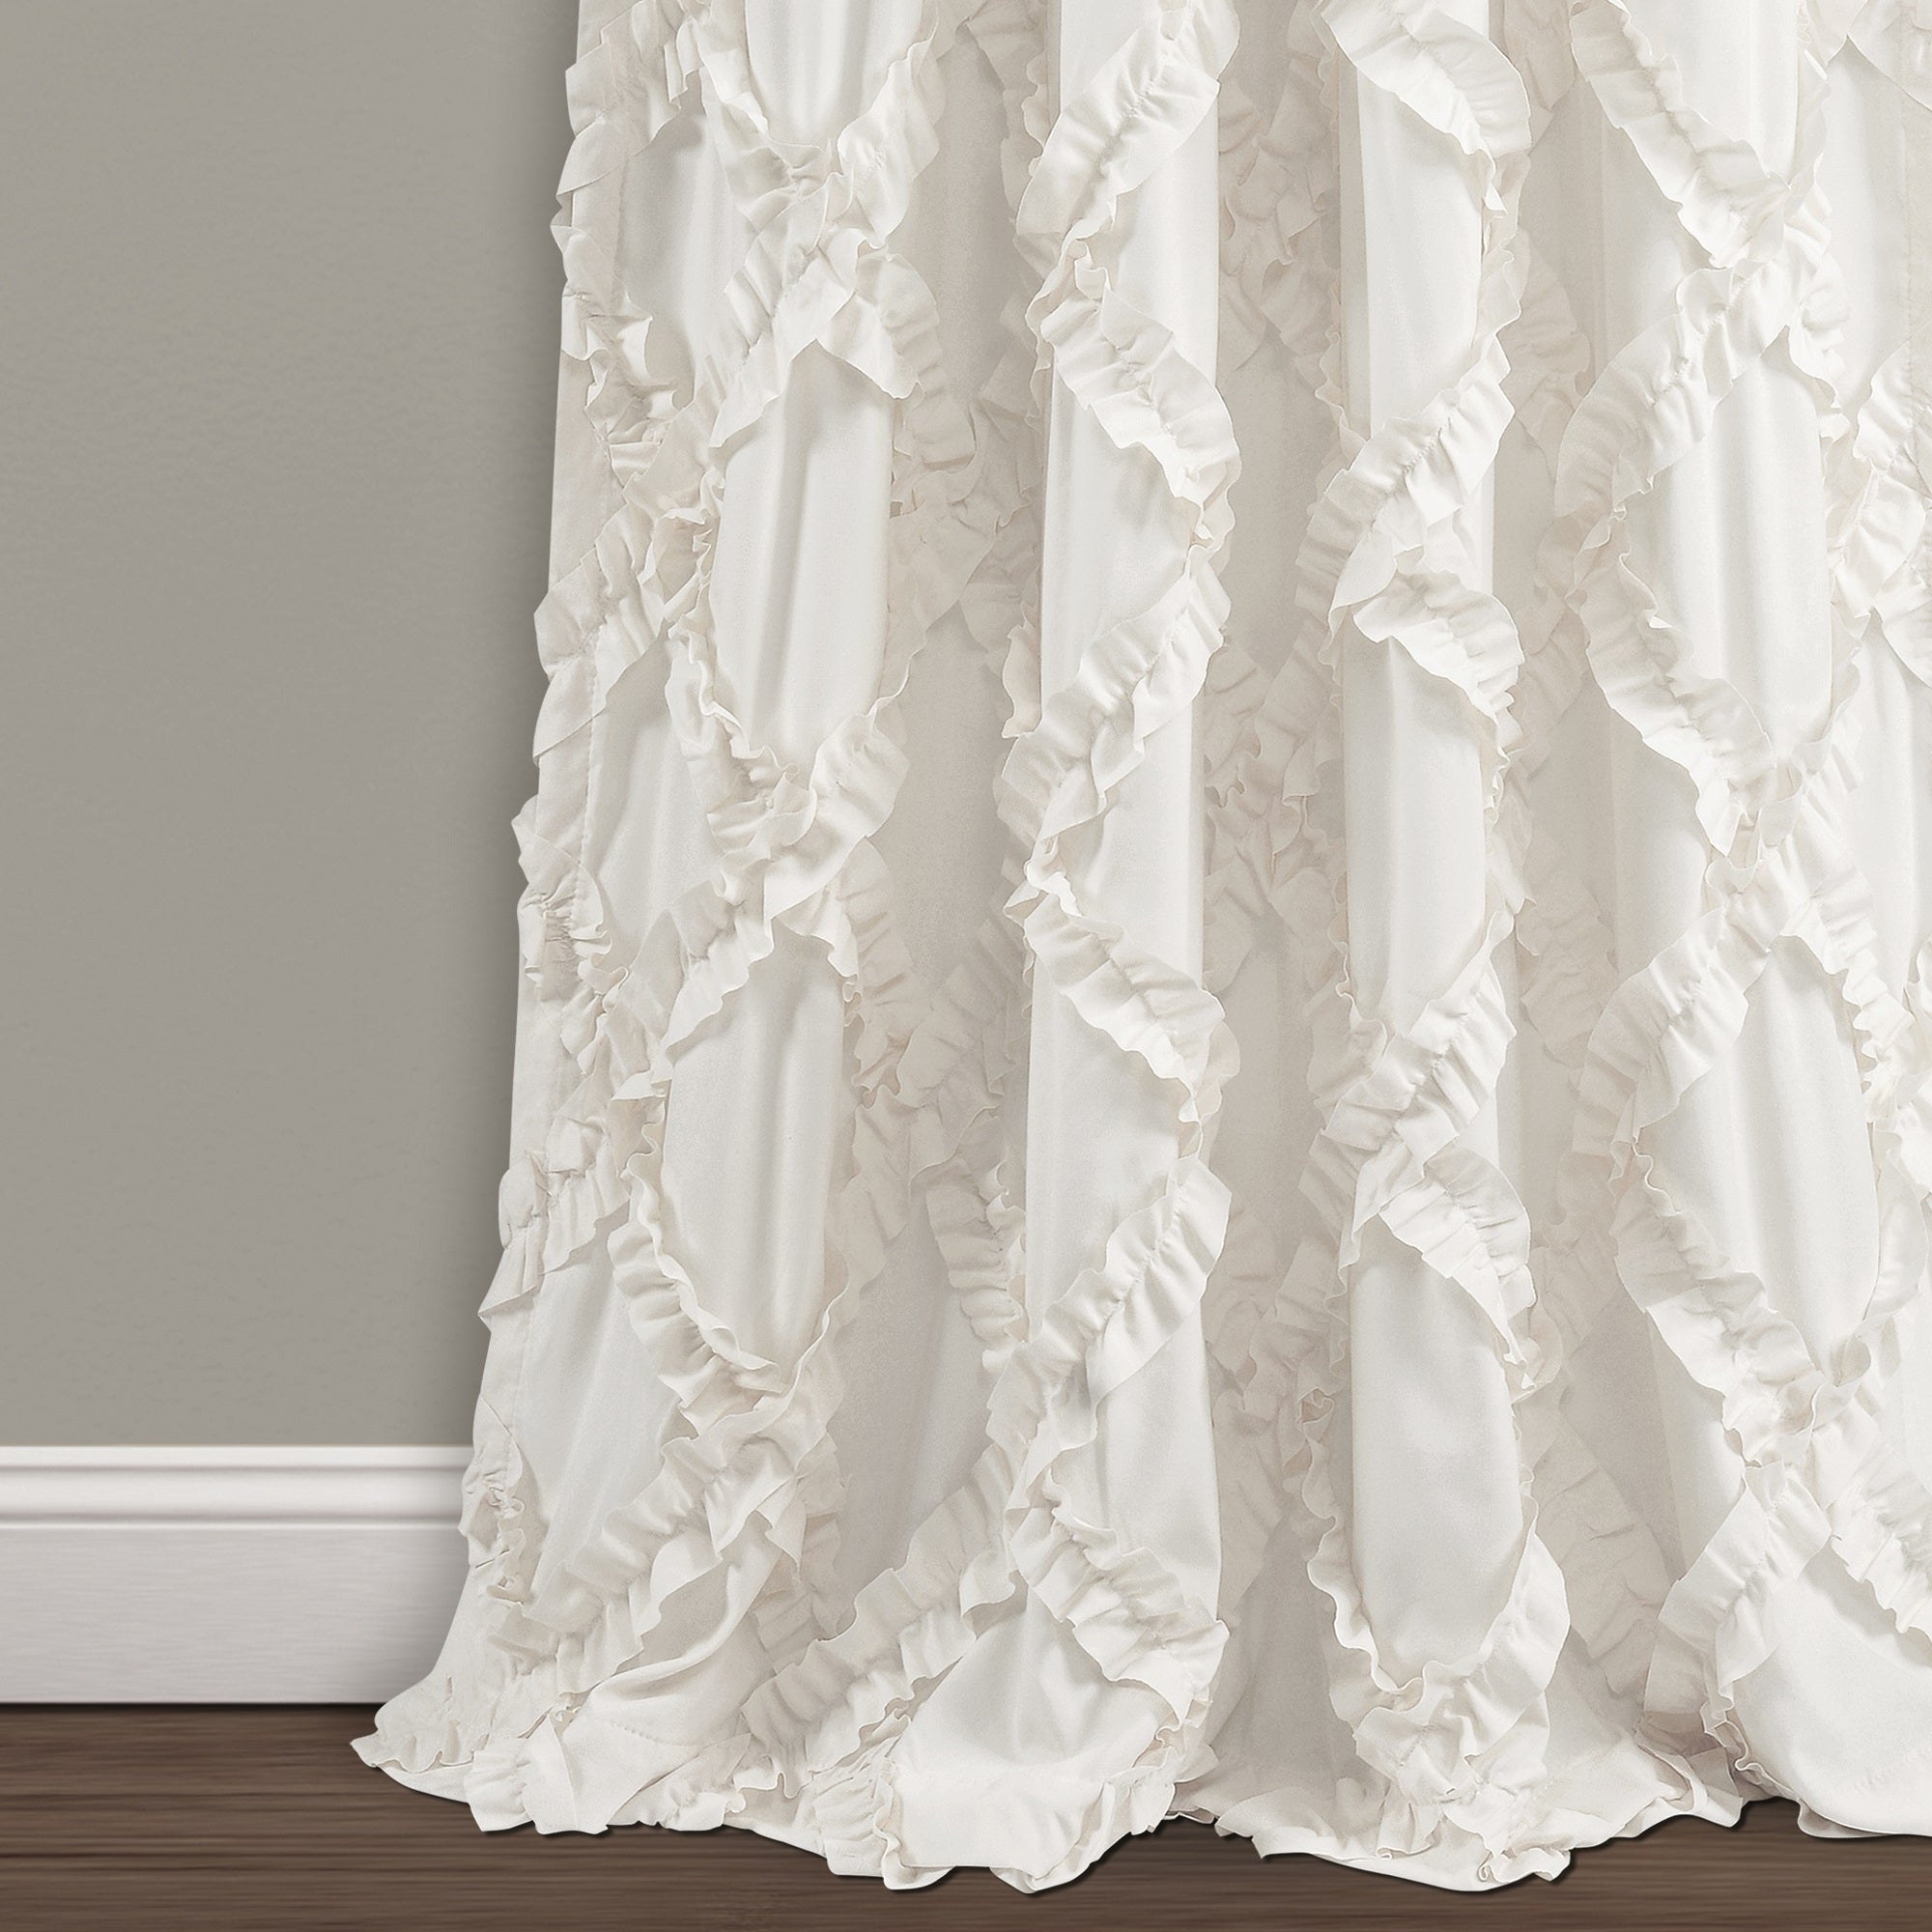 Ruffle Diamond Curtain Panel Pairs With Recent Lush Decor Ruffle Diamond Curtain Panel Pair (Gallery 11 of 20)